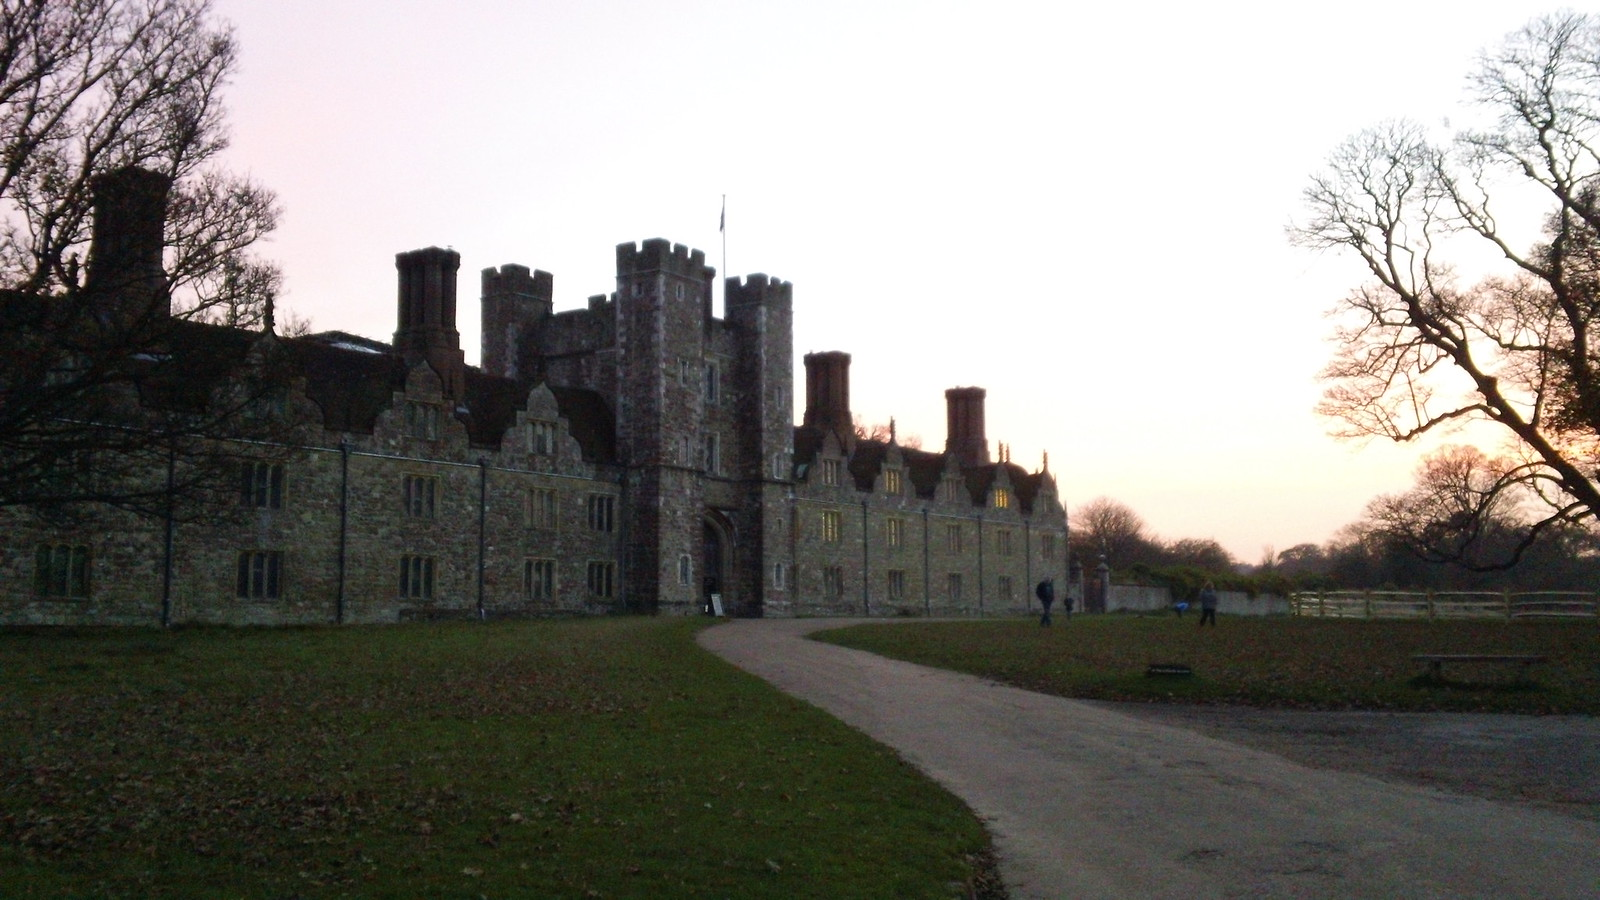 Knole House at sunset who said the sun never sets on the British Empire?